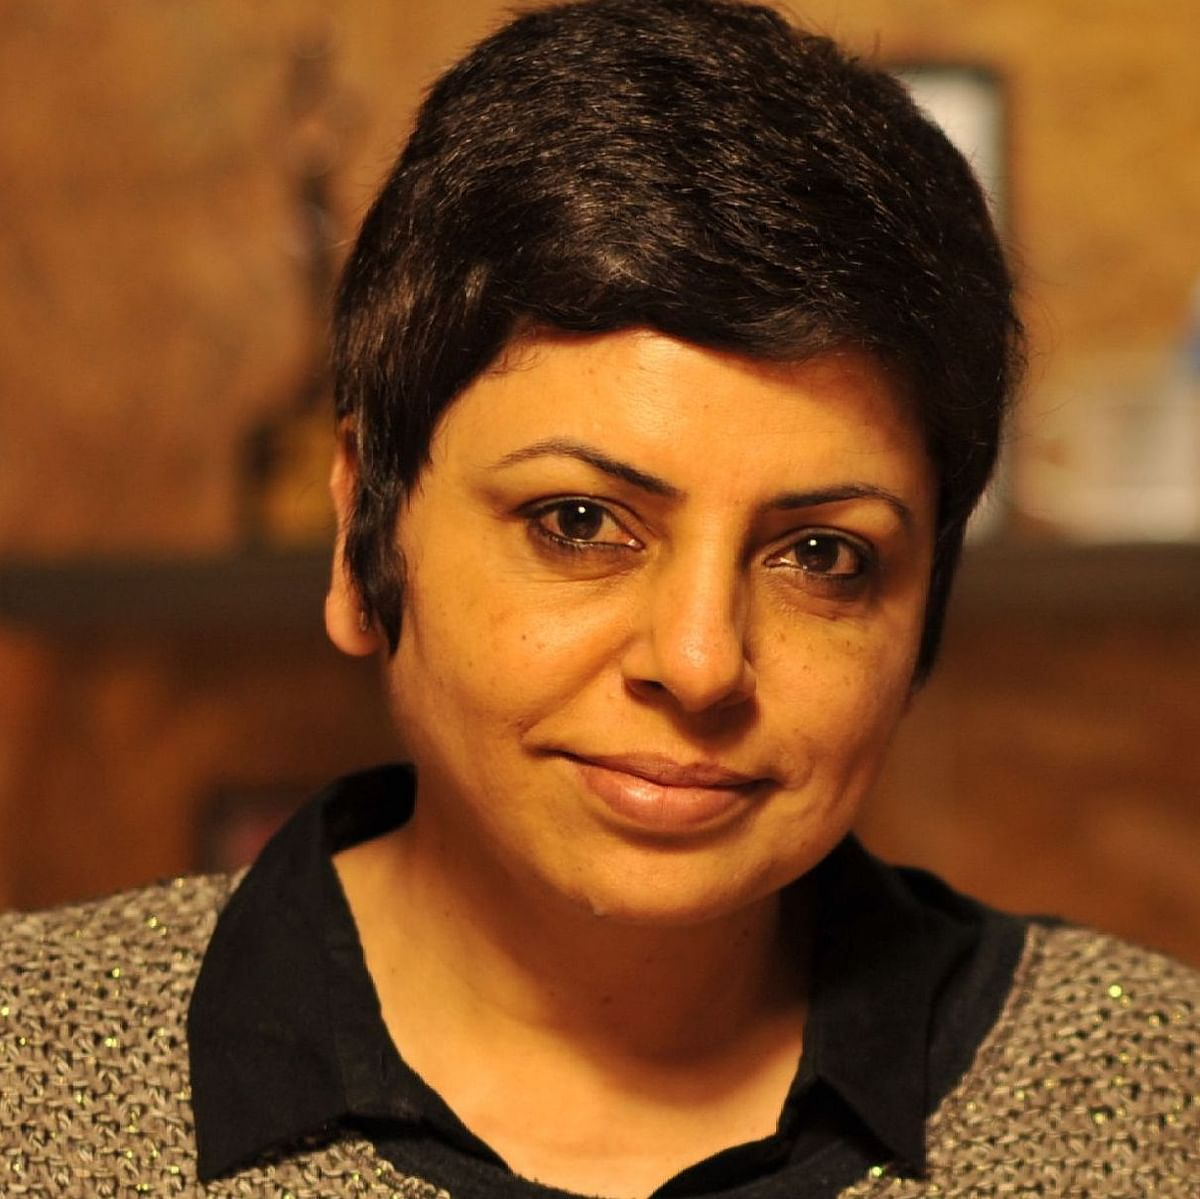 Ashwini Deshpande, co-founder, director, Elephant Design.